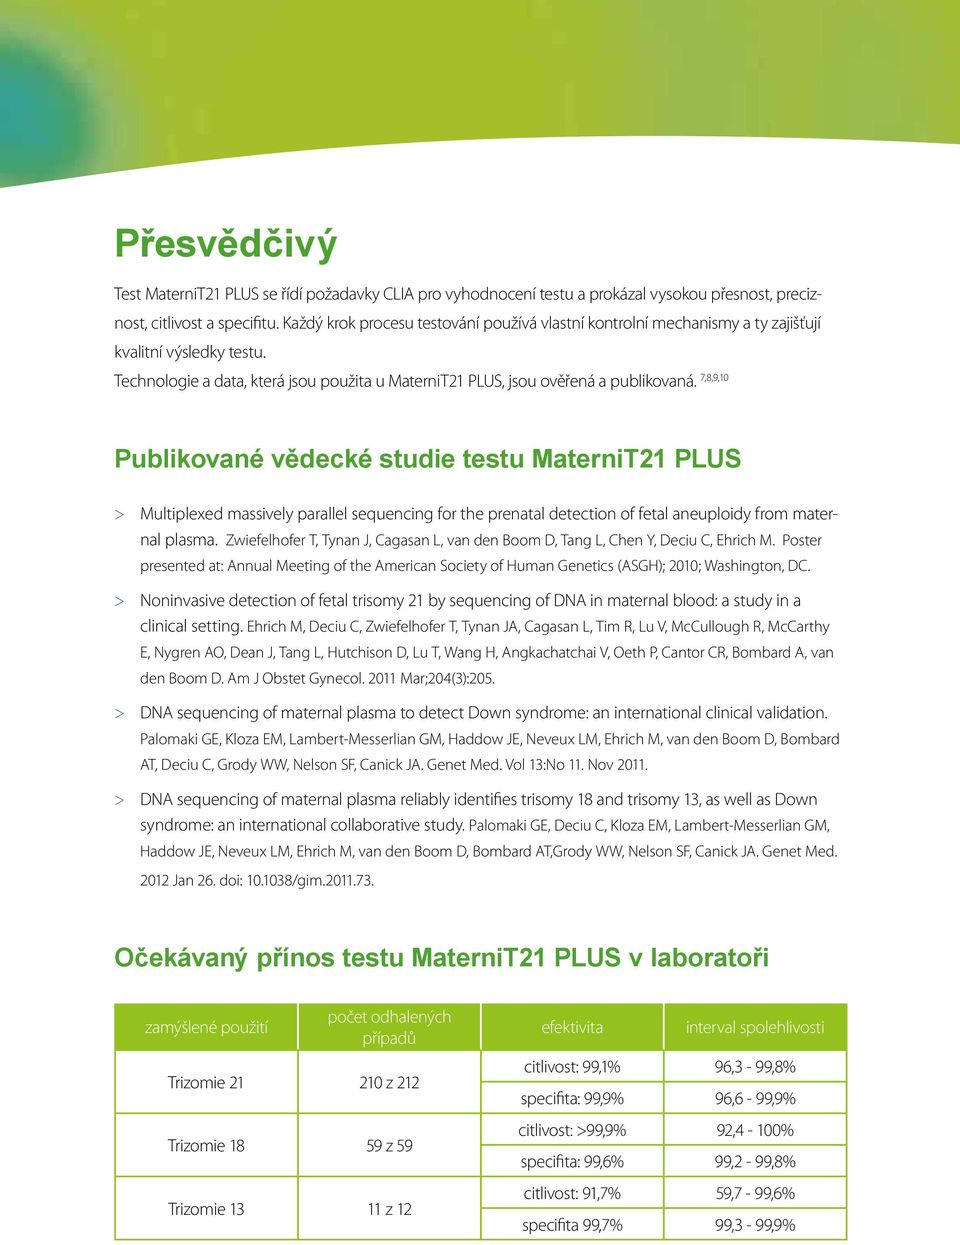 7,8,9,10 Publikované vědecké studie testu MaterniT21 PLUS > Multiplexed massively parallel sequencing for the prenatal detection of fetal aneuploidy from maternal plasma.